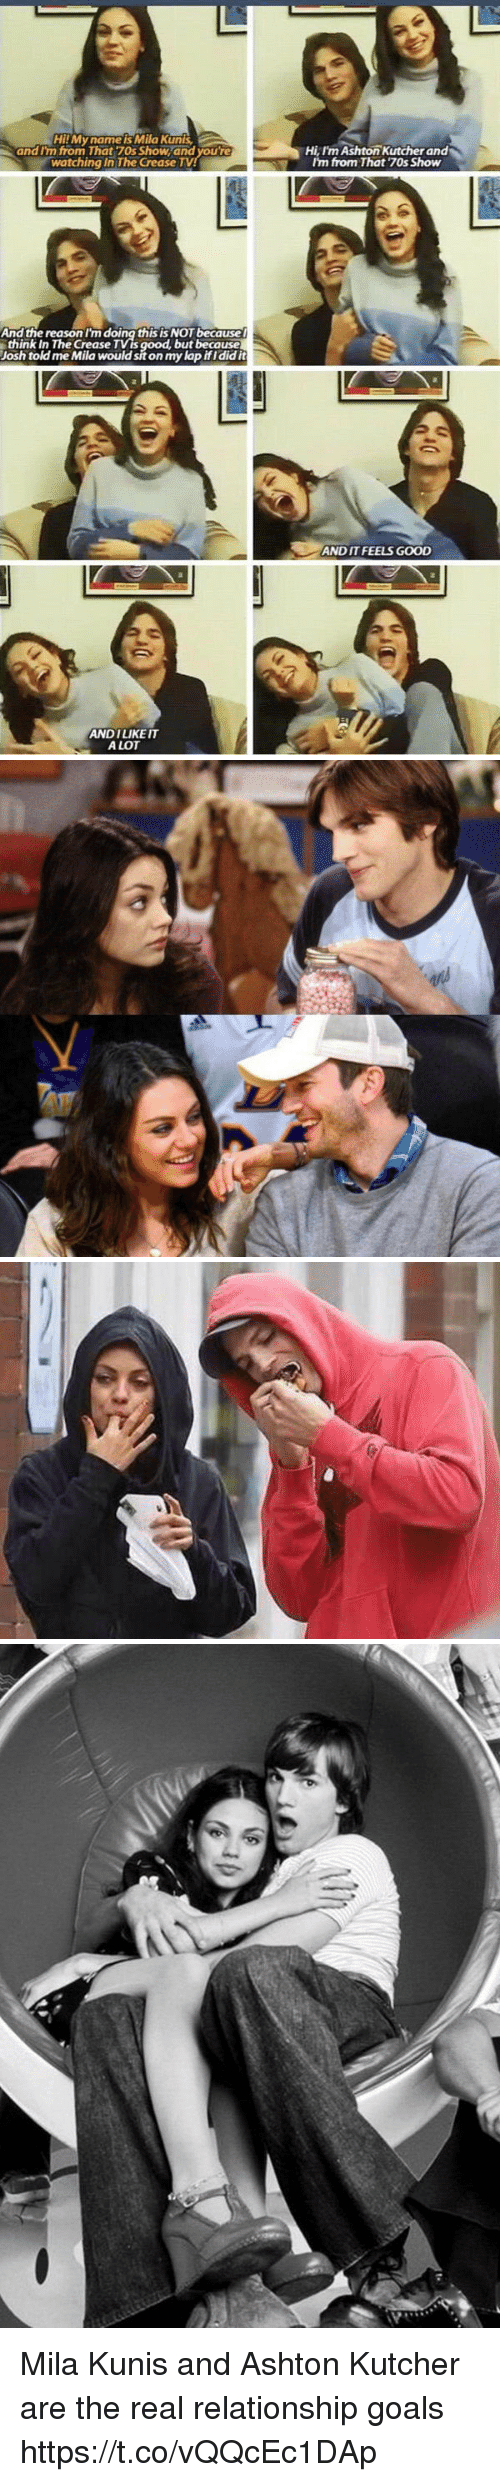 70s Show: HiMyname is Mila Kunts  and Im from That 70s Show and you're  watching In The Crease  Hi Im Ashton Kutcher and  I'm from That 7Os Show  And the reason I'm doing this is NOT because  think In The Crease TVis good, but because  Josh told me Mila would sit on my lap ifidid it  ANDIT FEELS GOOD  ANDILIKE IT  A LOT Mila Kunis and Ashton Kutcher are the real relationship goals https://t.co/vQQcEc1DAp